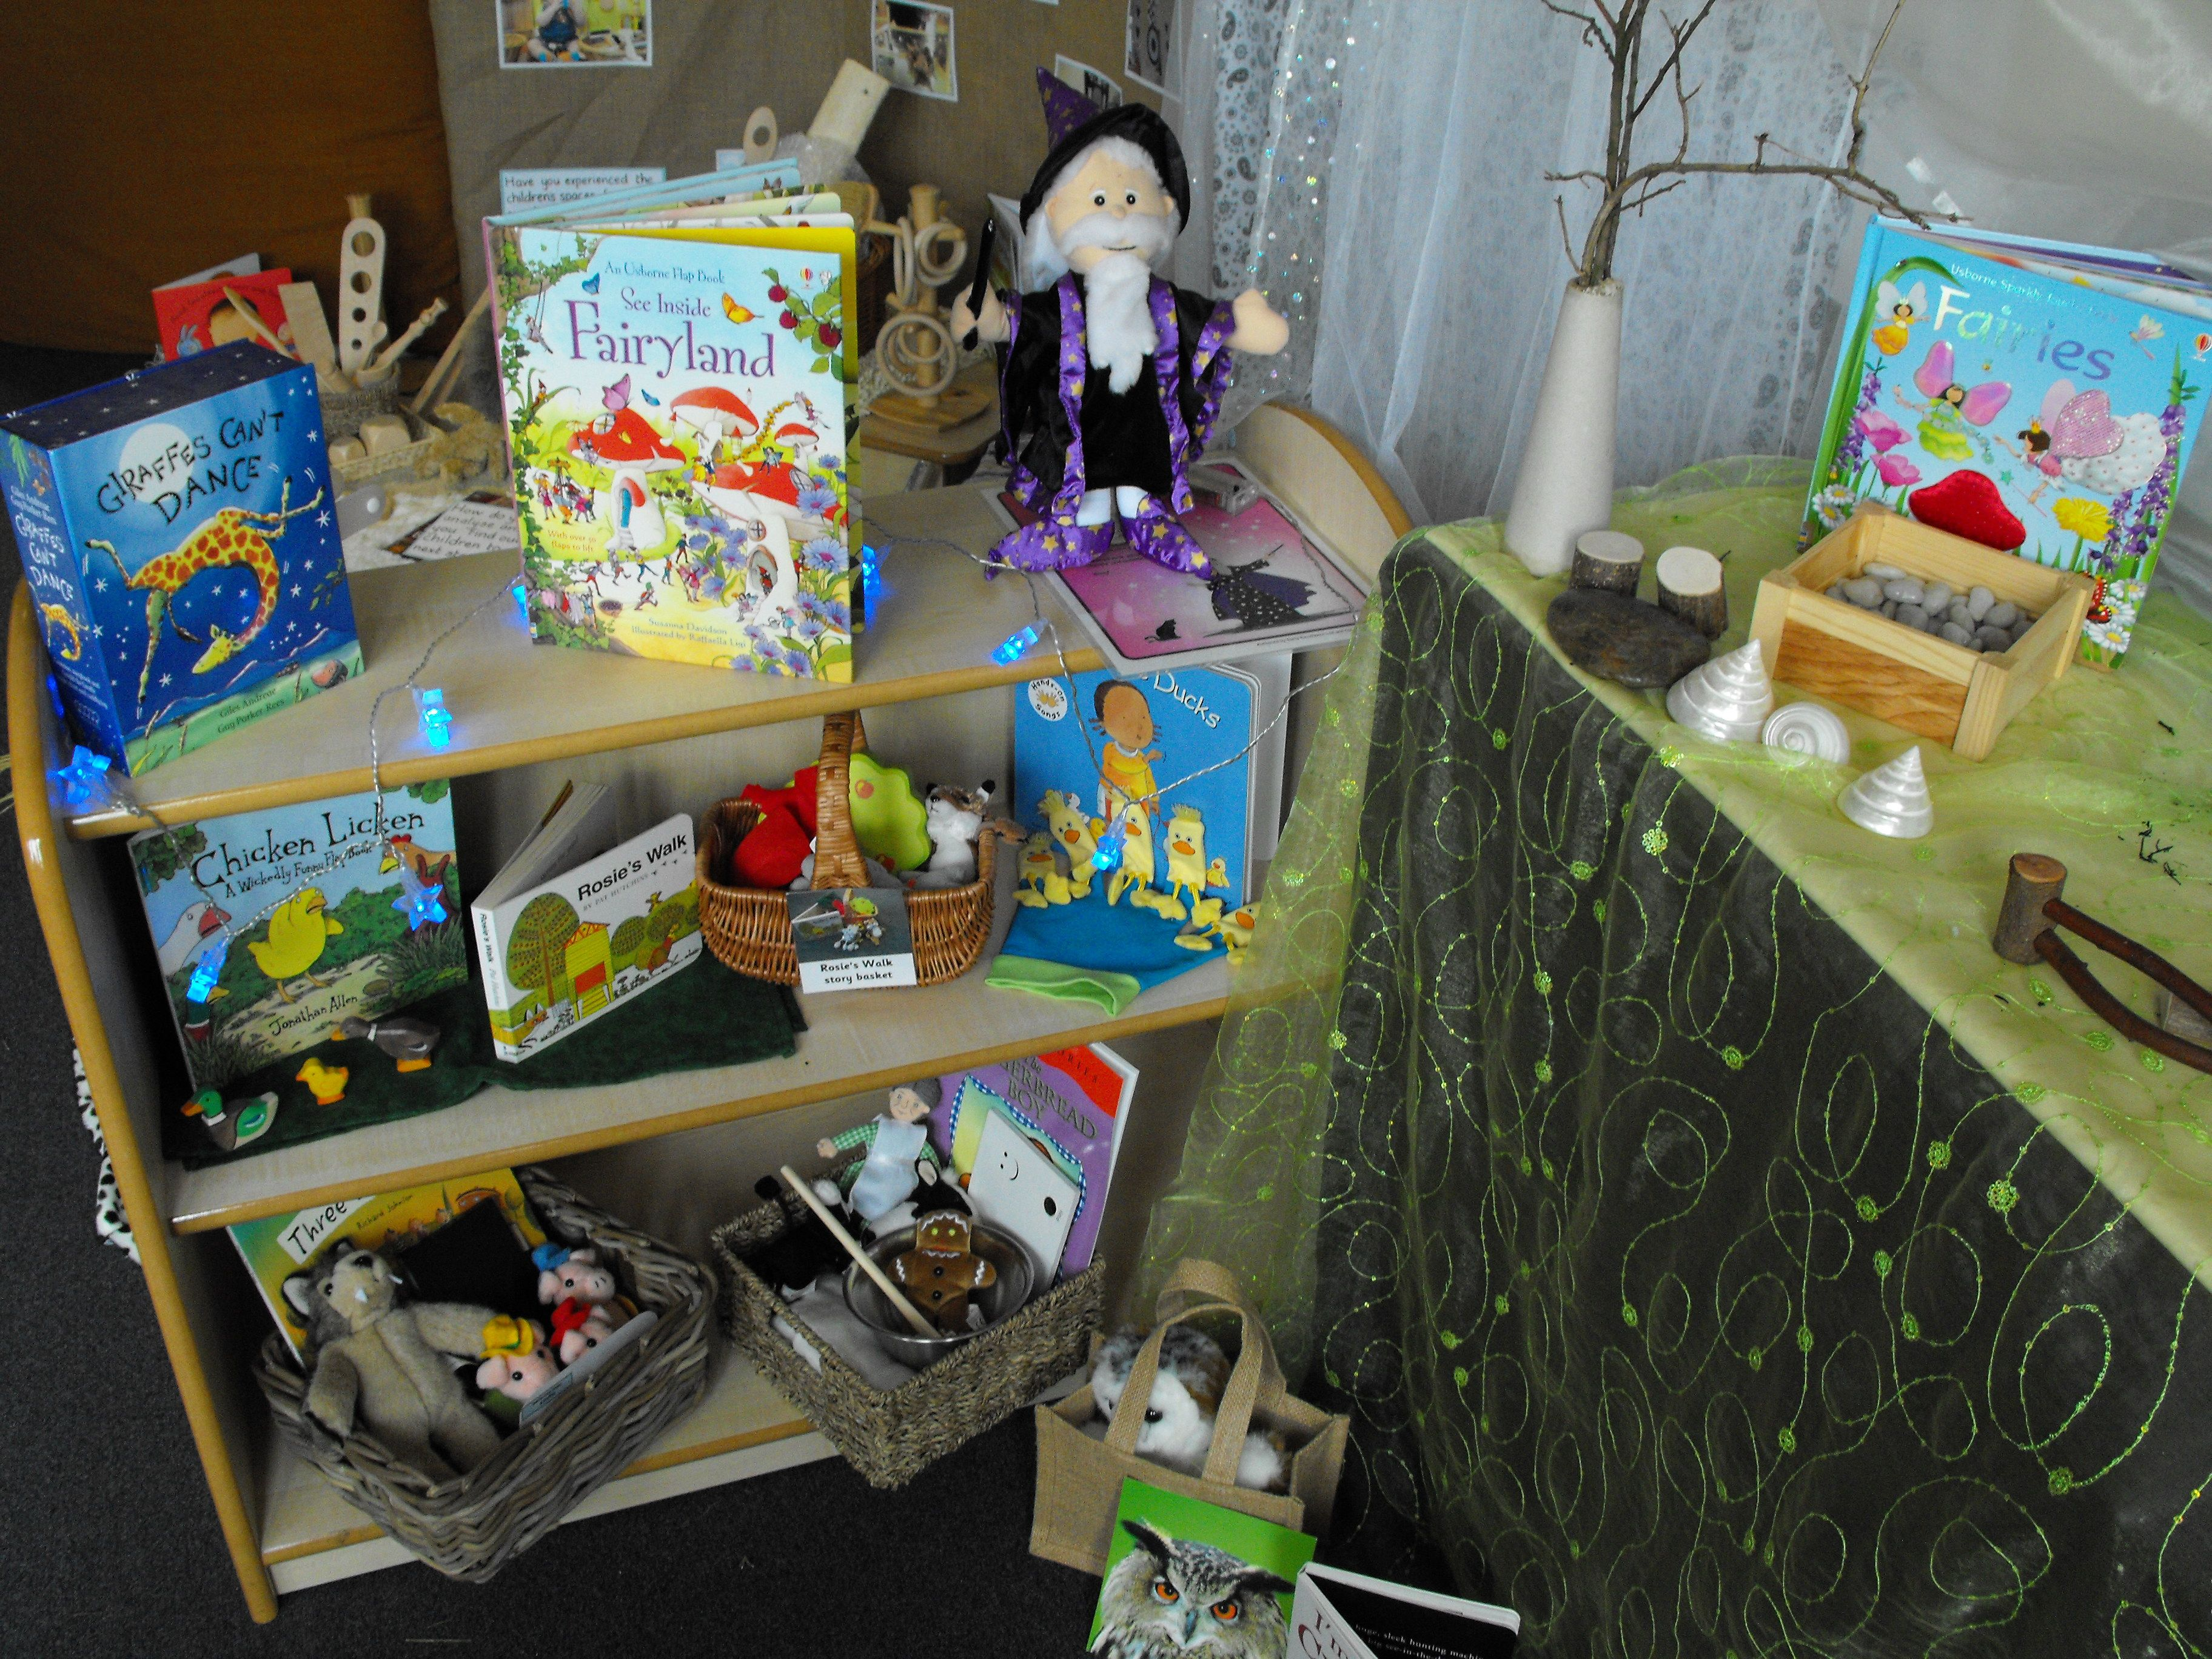 An inspiring story corner with books and related props and